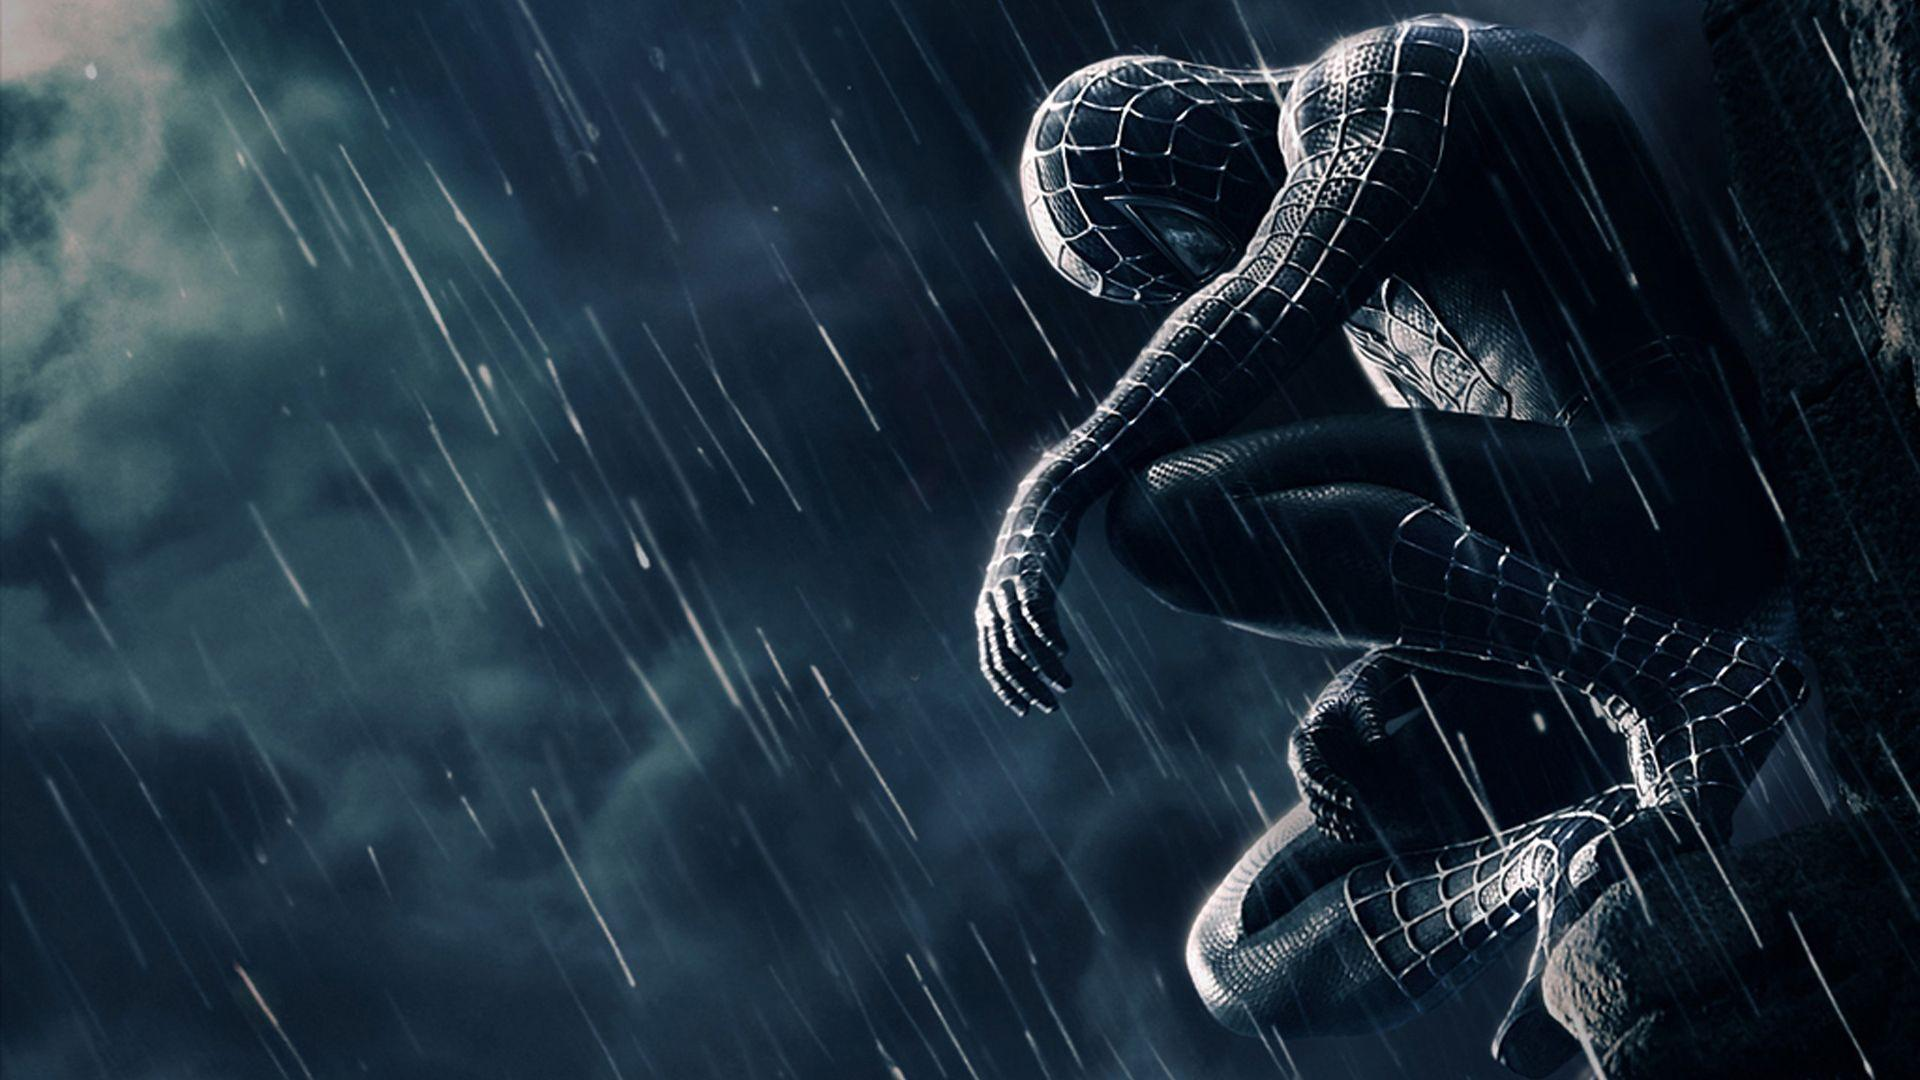 Wallpapers For > Spiderman Hd Wallpaper 1920x1080